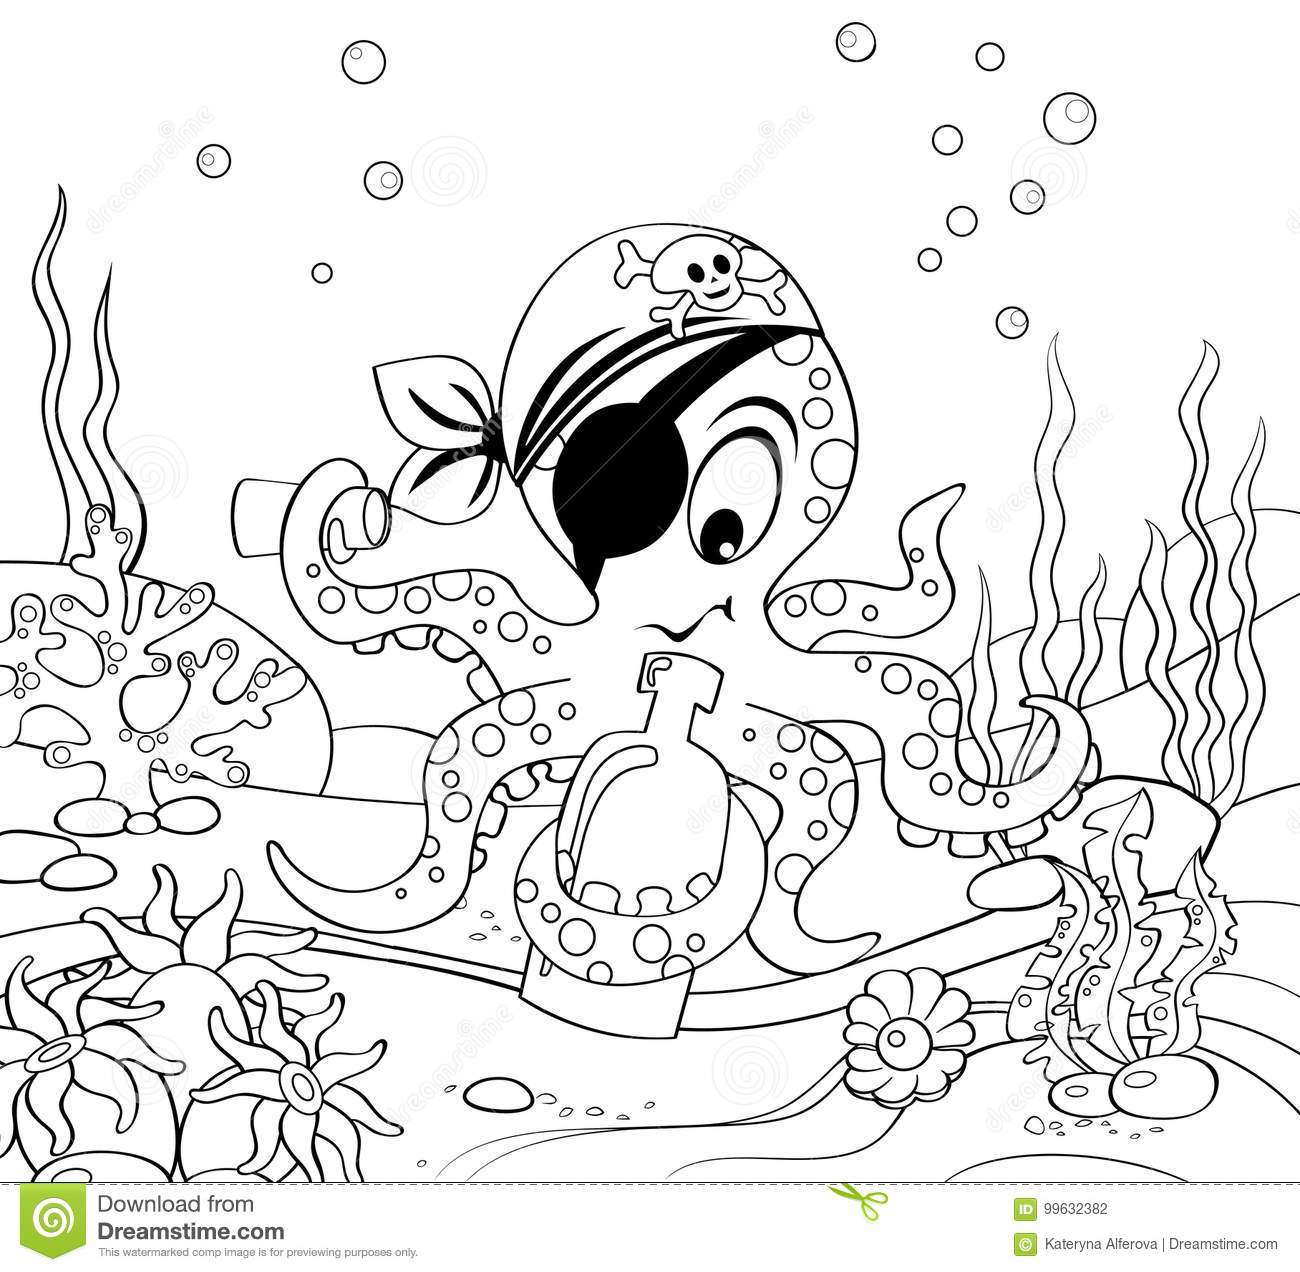 Cartoon pirate octopus with bottle. Underwater world. Black and white vector illustration for coloring book